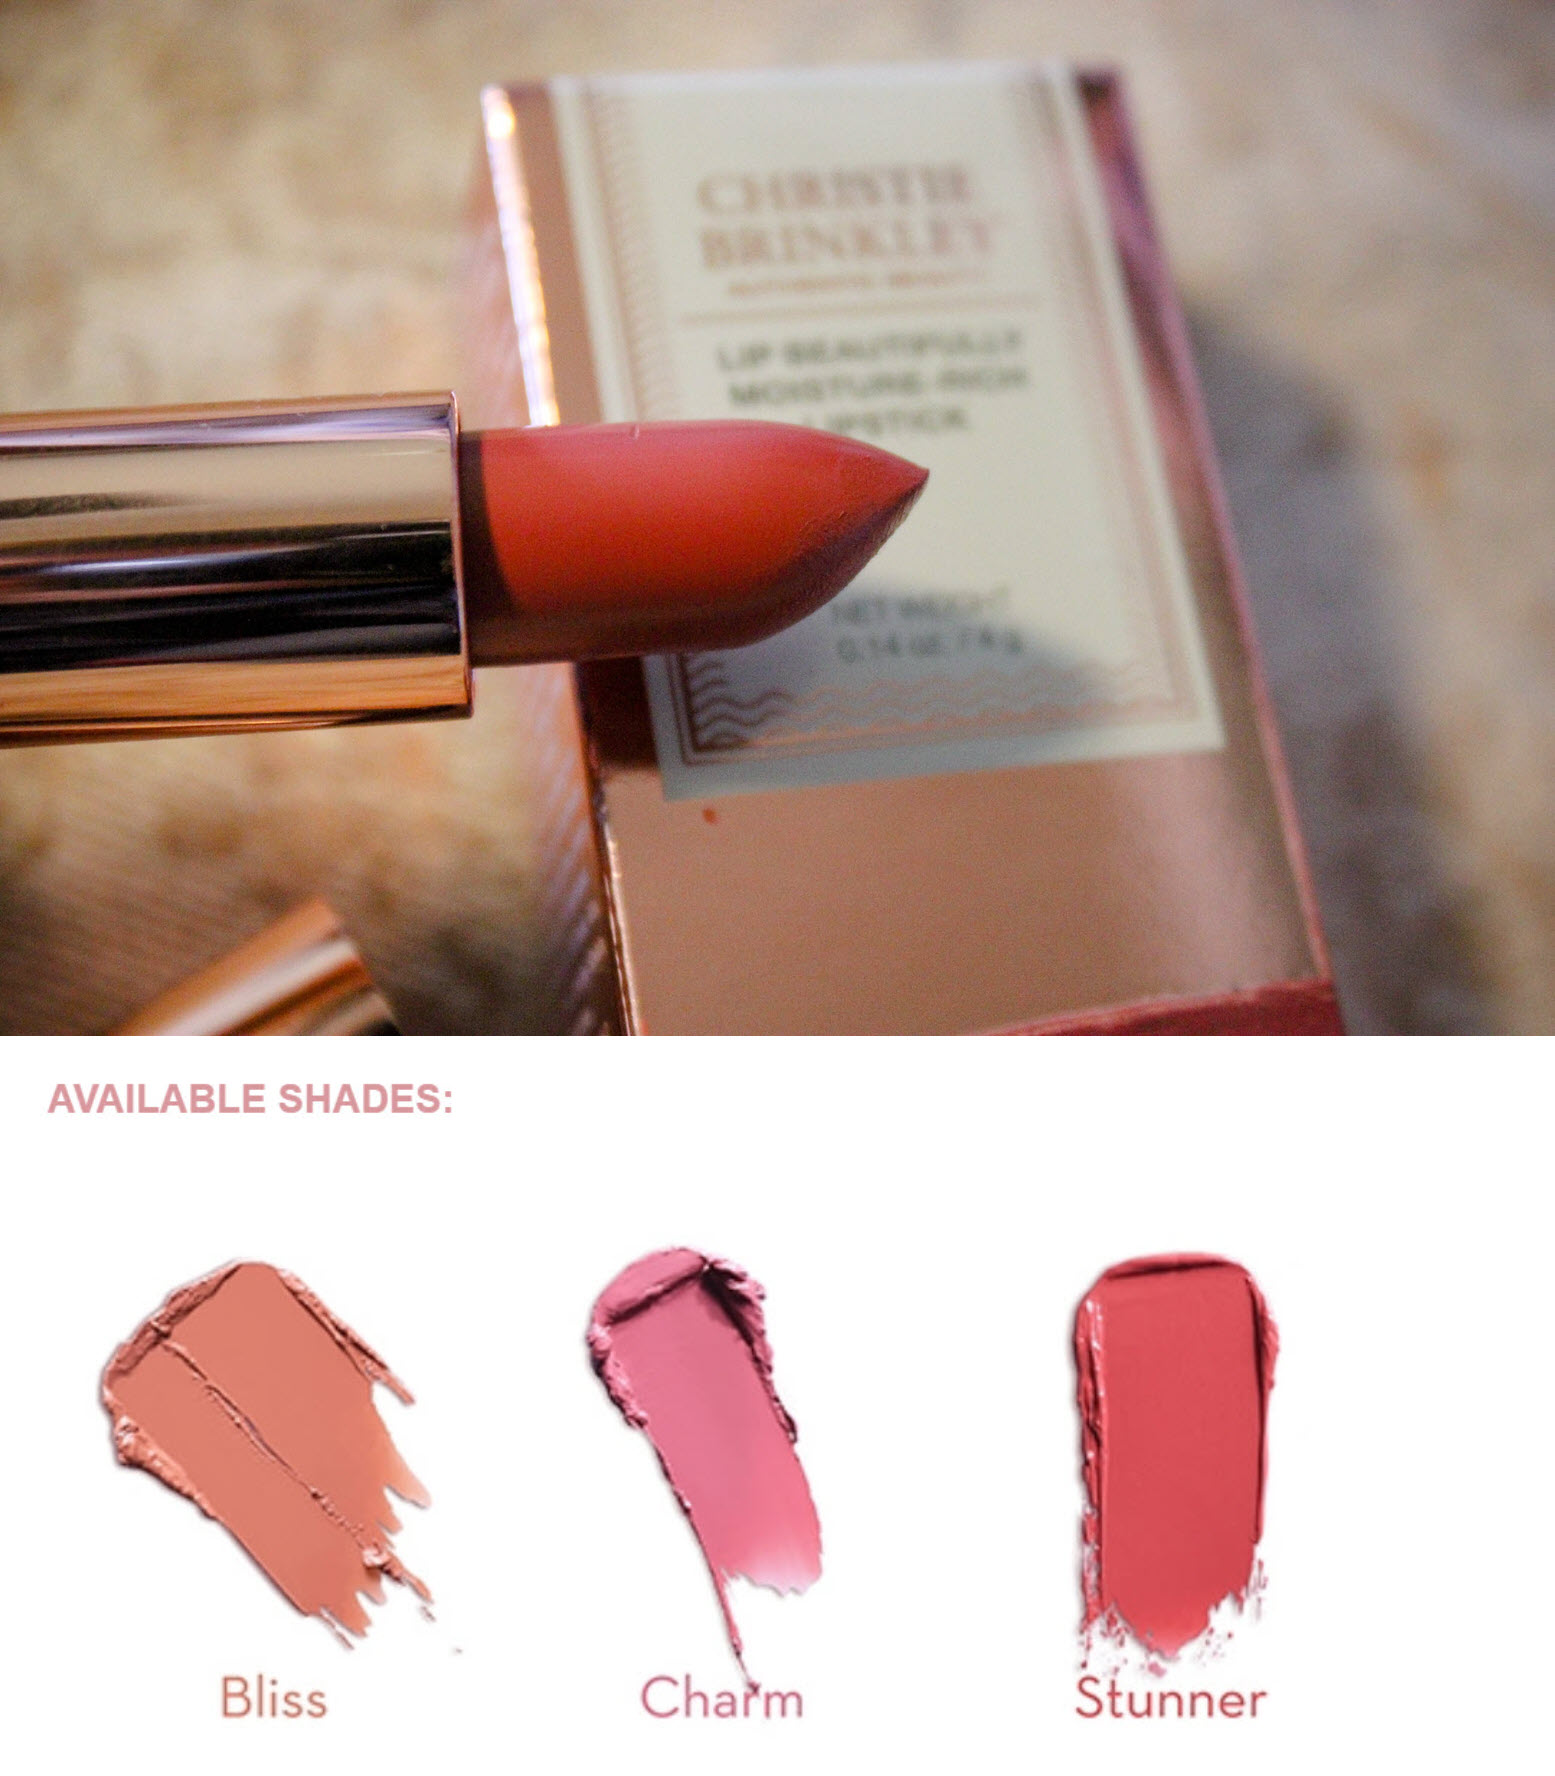 Christie Brinkley's Makeup Products